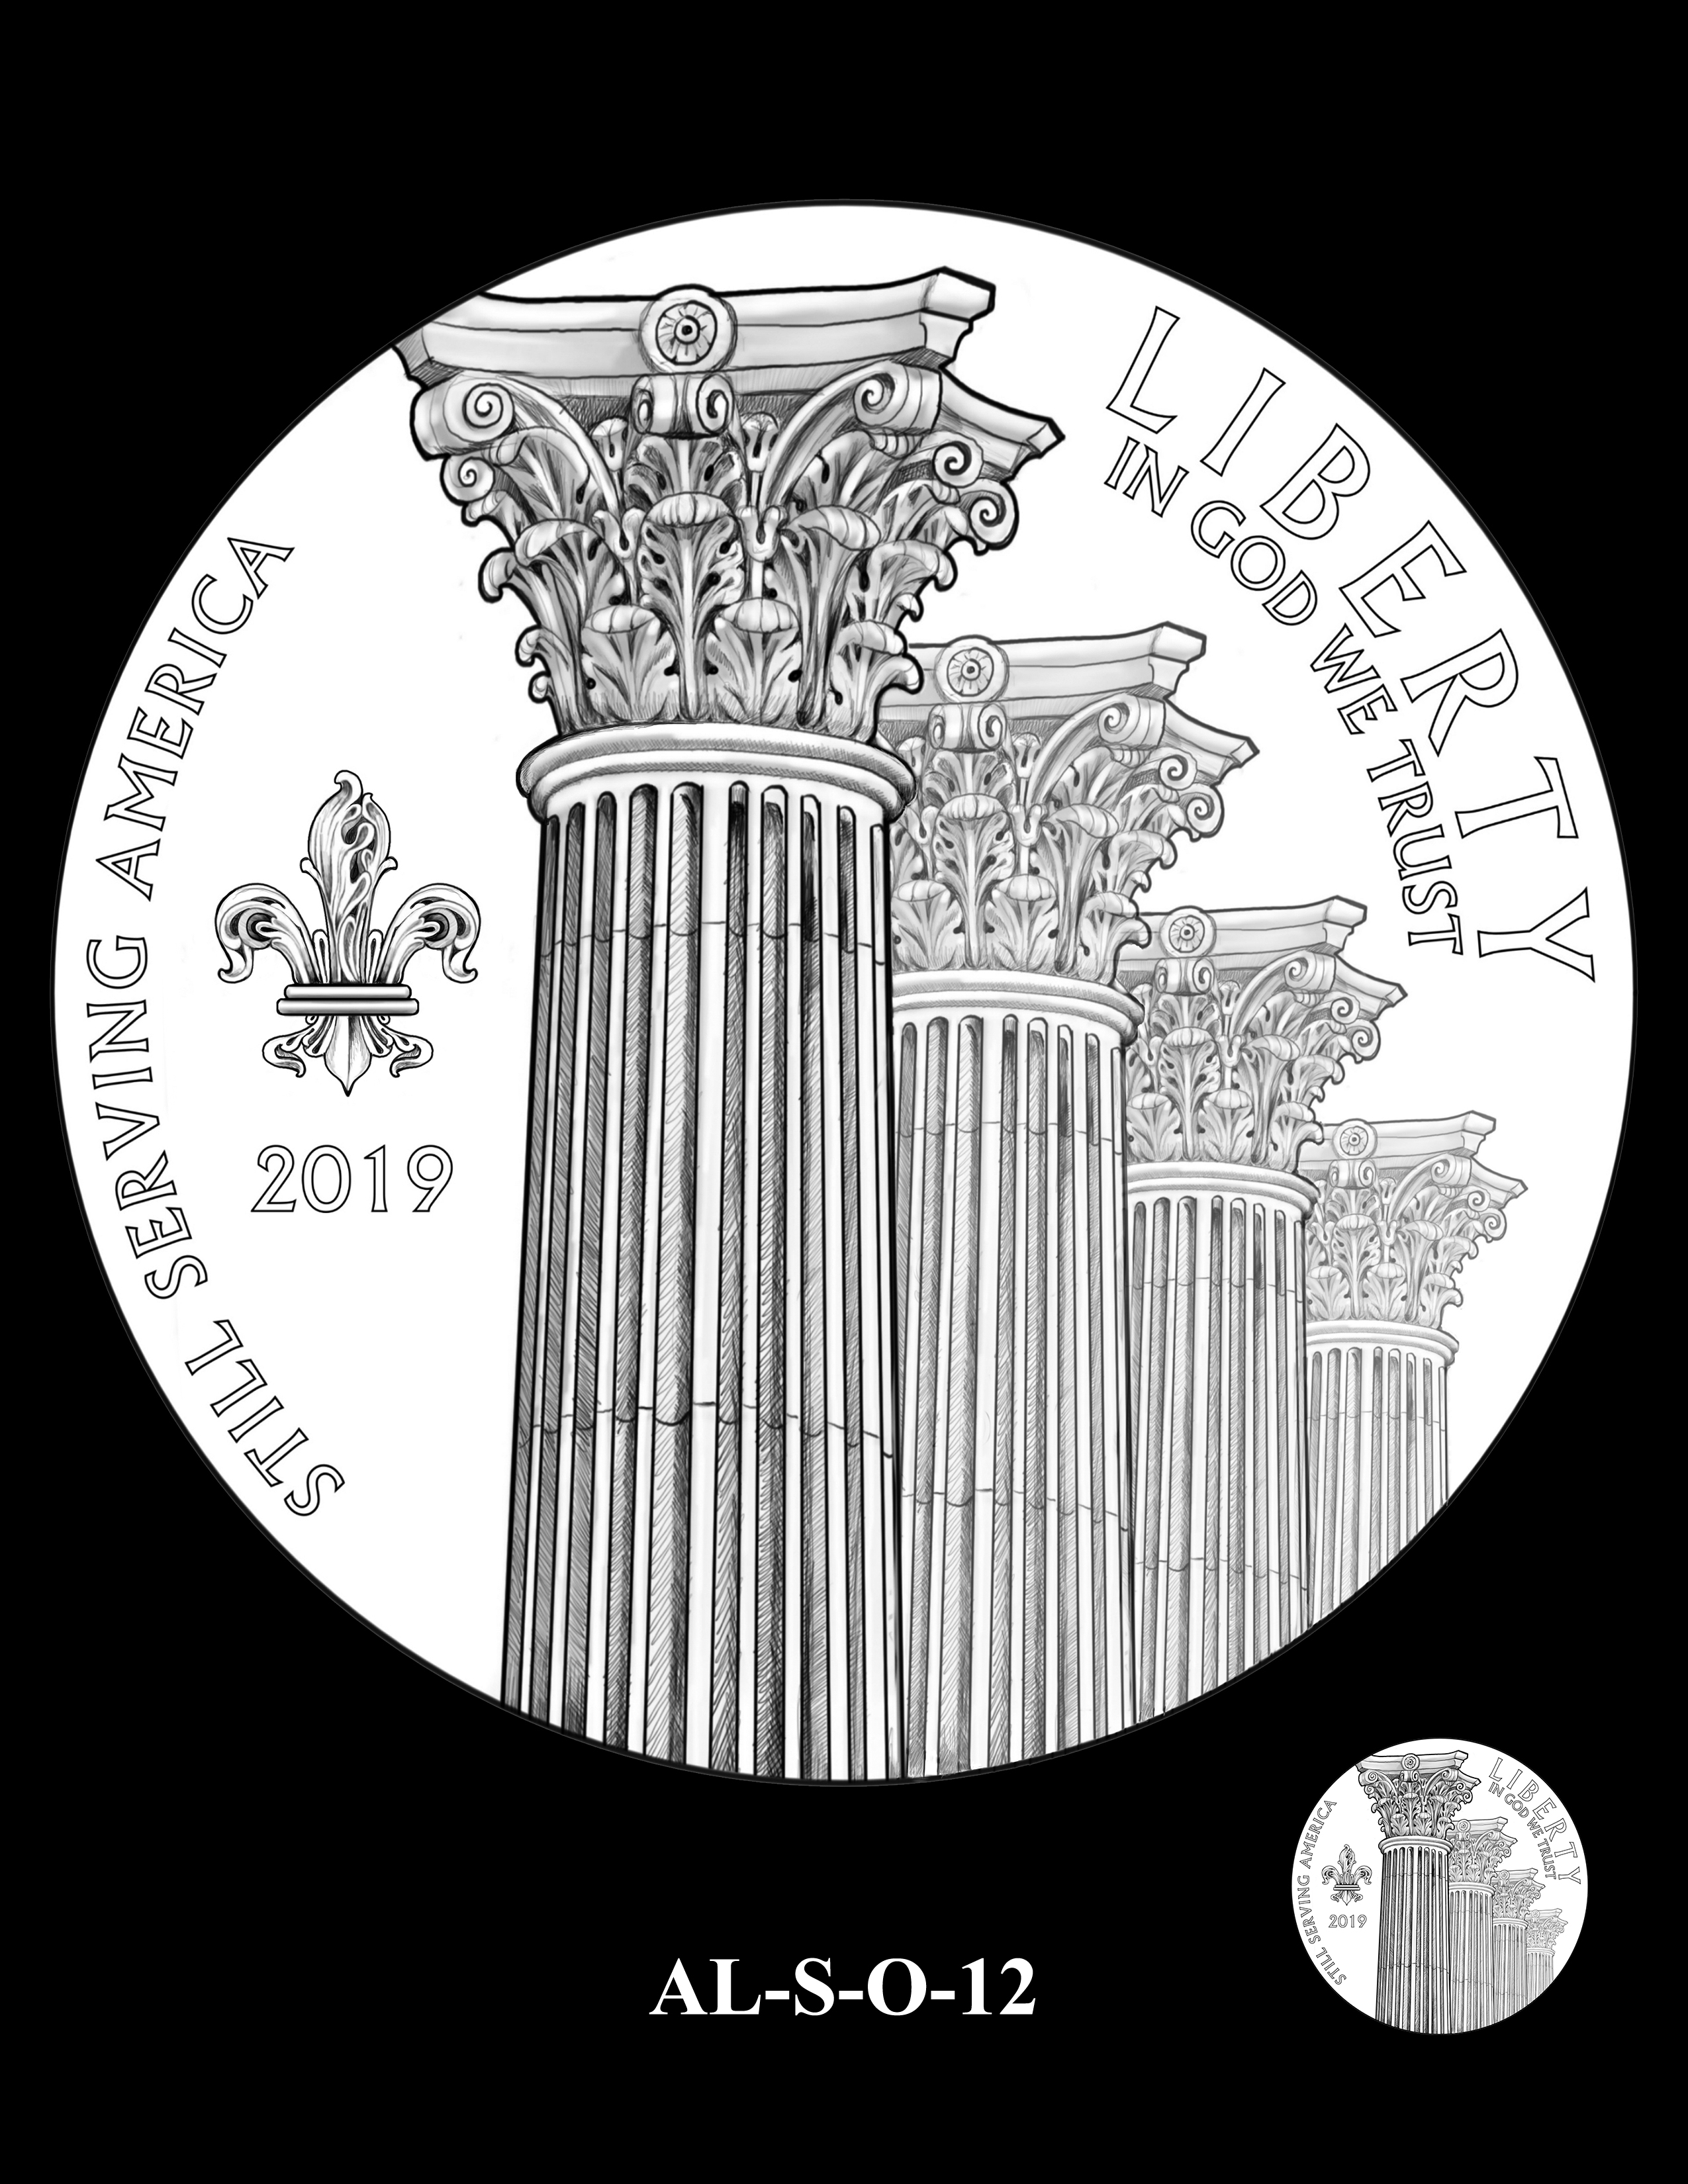 AL-S-O-12 -- 2019 American Legion 100th Anniversary Commemorative Coin Program - Silver Obverse